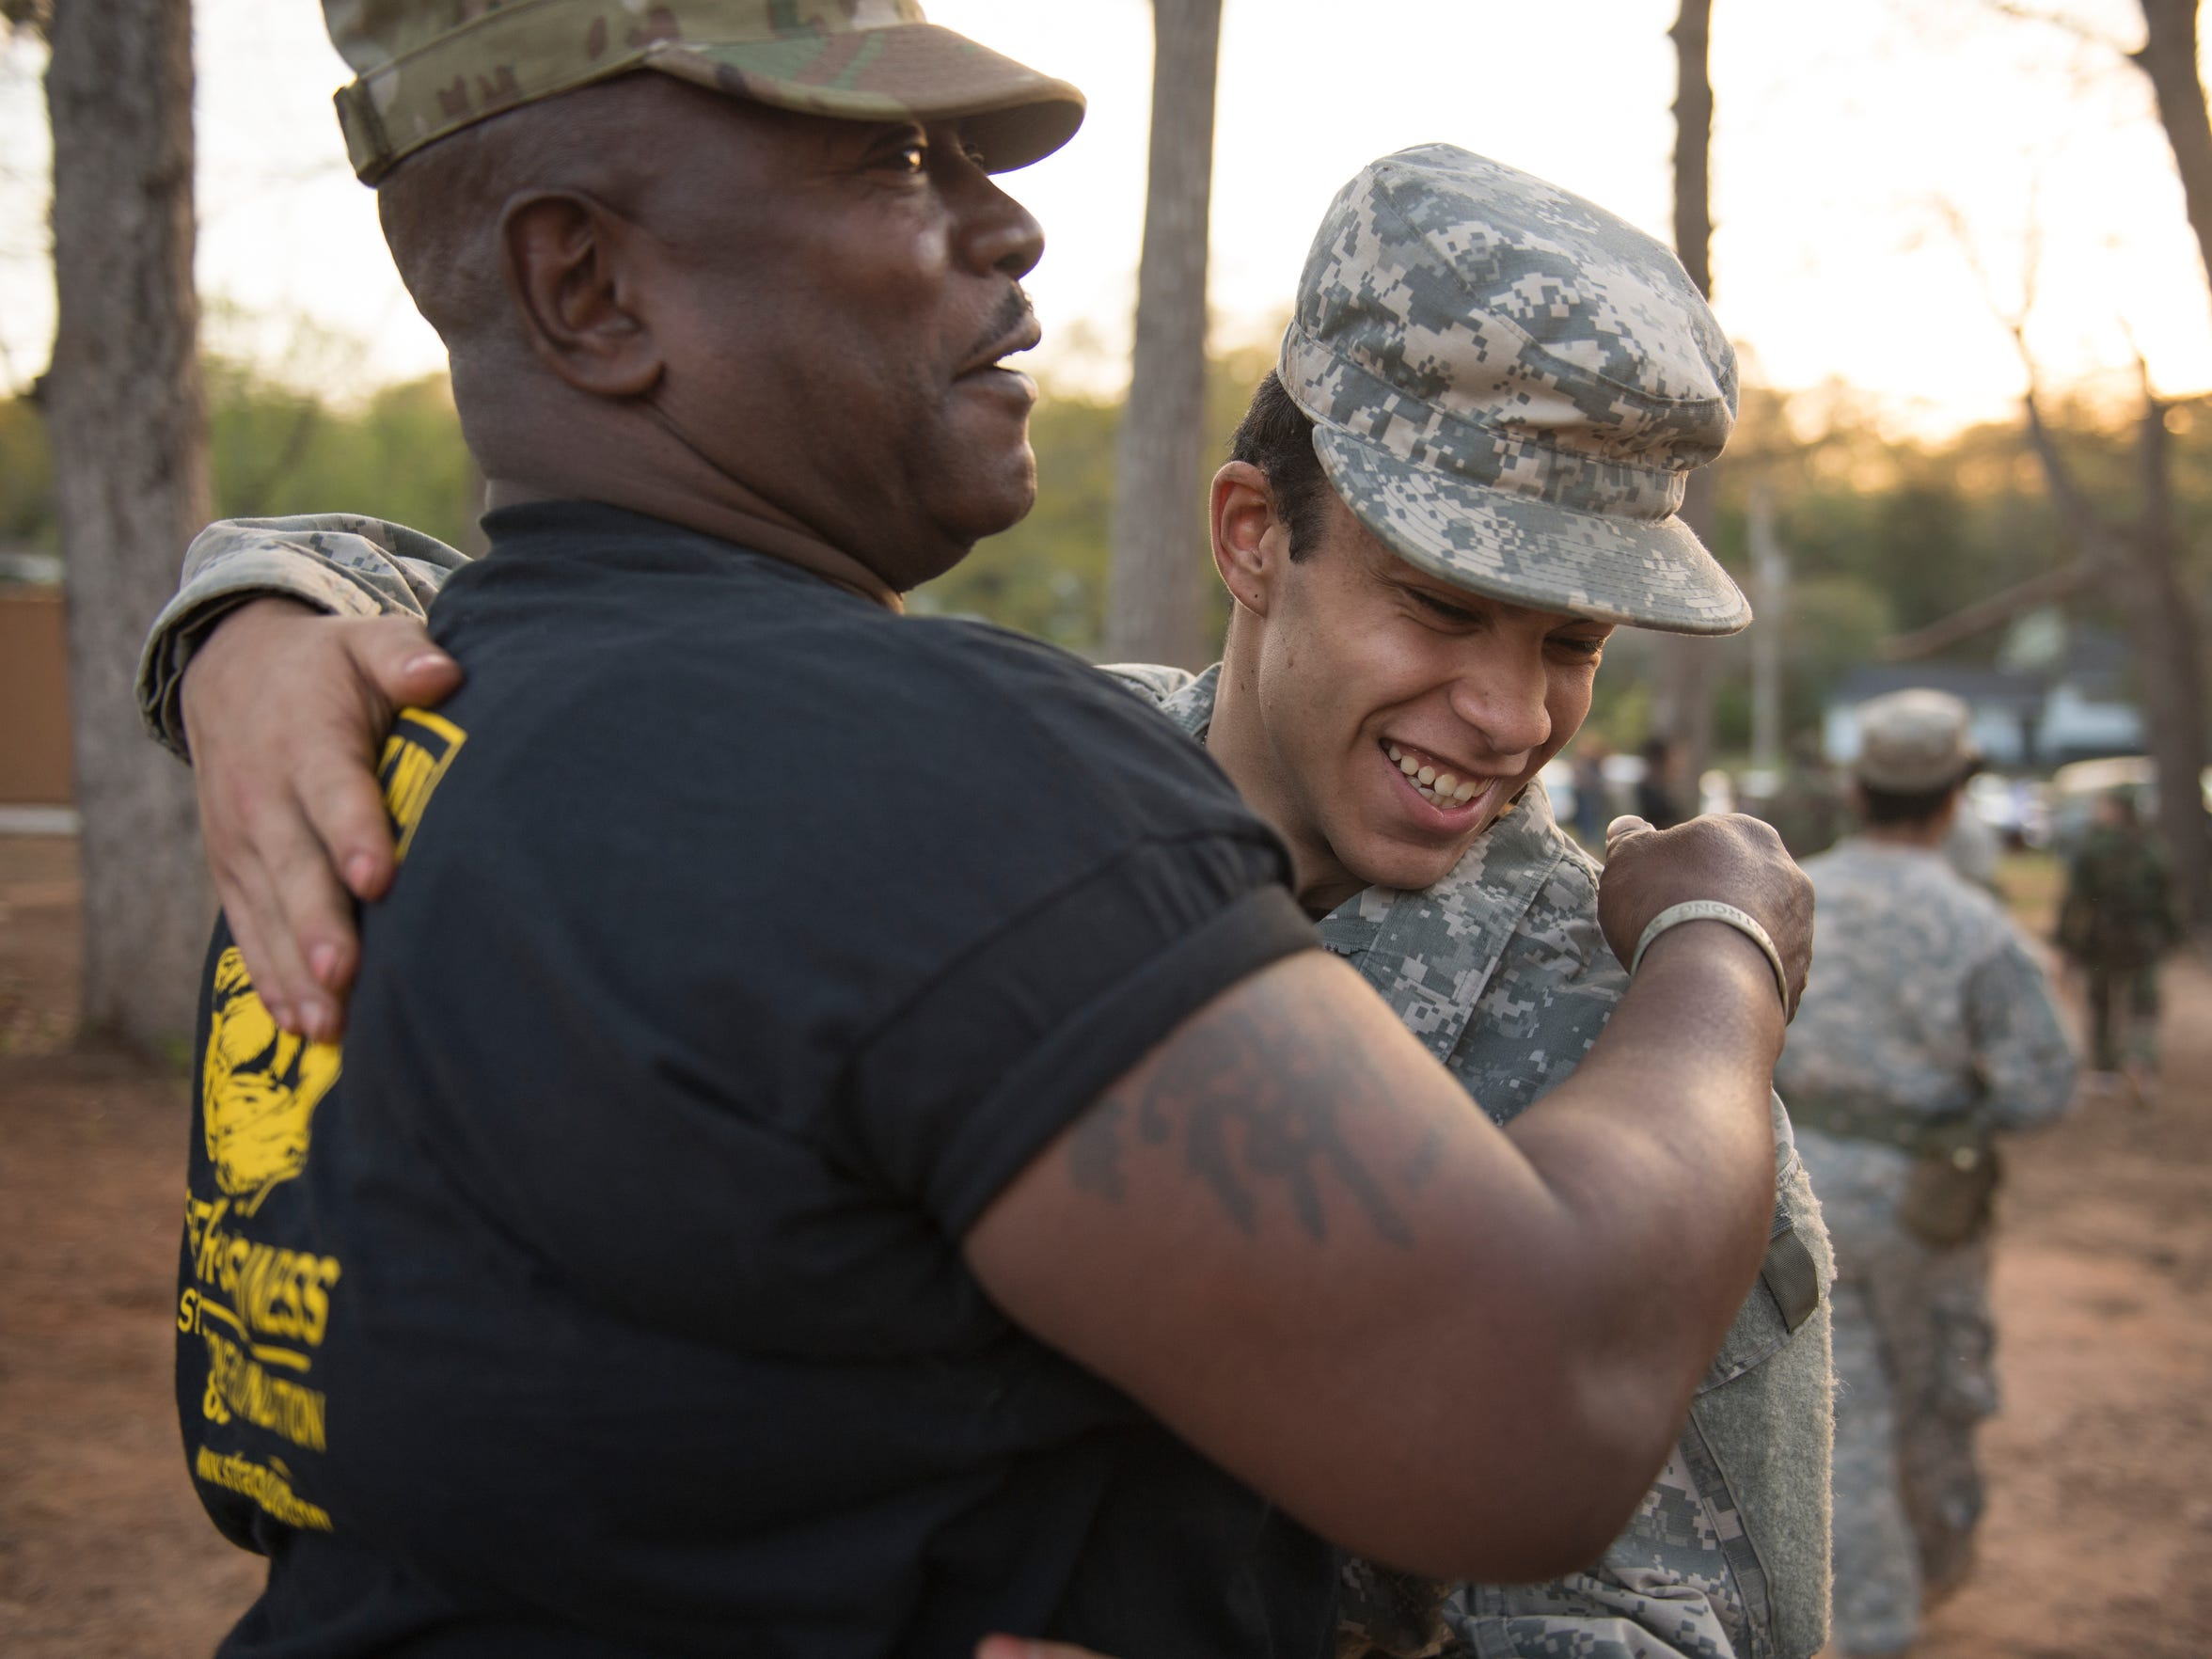 Jose Lopez, 15, hugs Drill Sergeant Steven Sullivan on Tuesday, April 10, 2018. Lopez, who has been dealing with issues at home, said he sees the drill sergeant as a big brother to him.